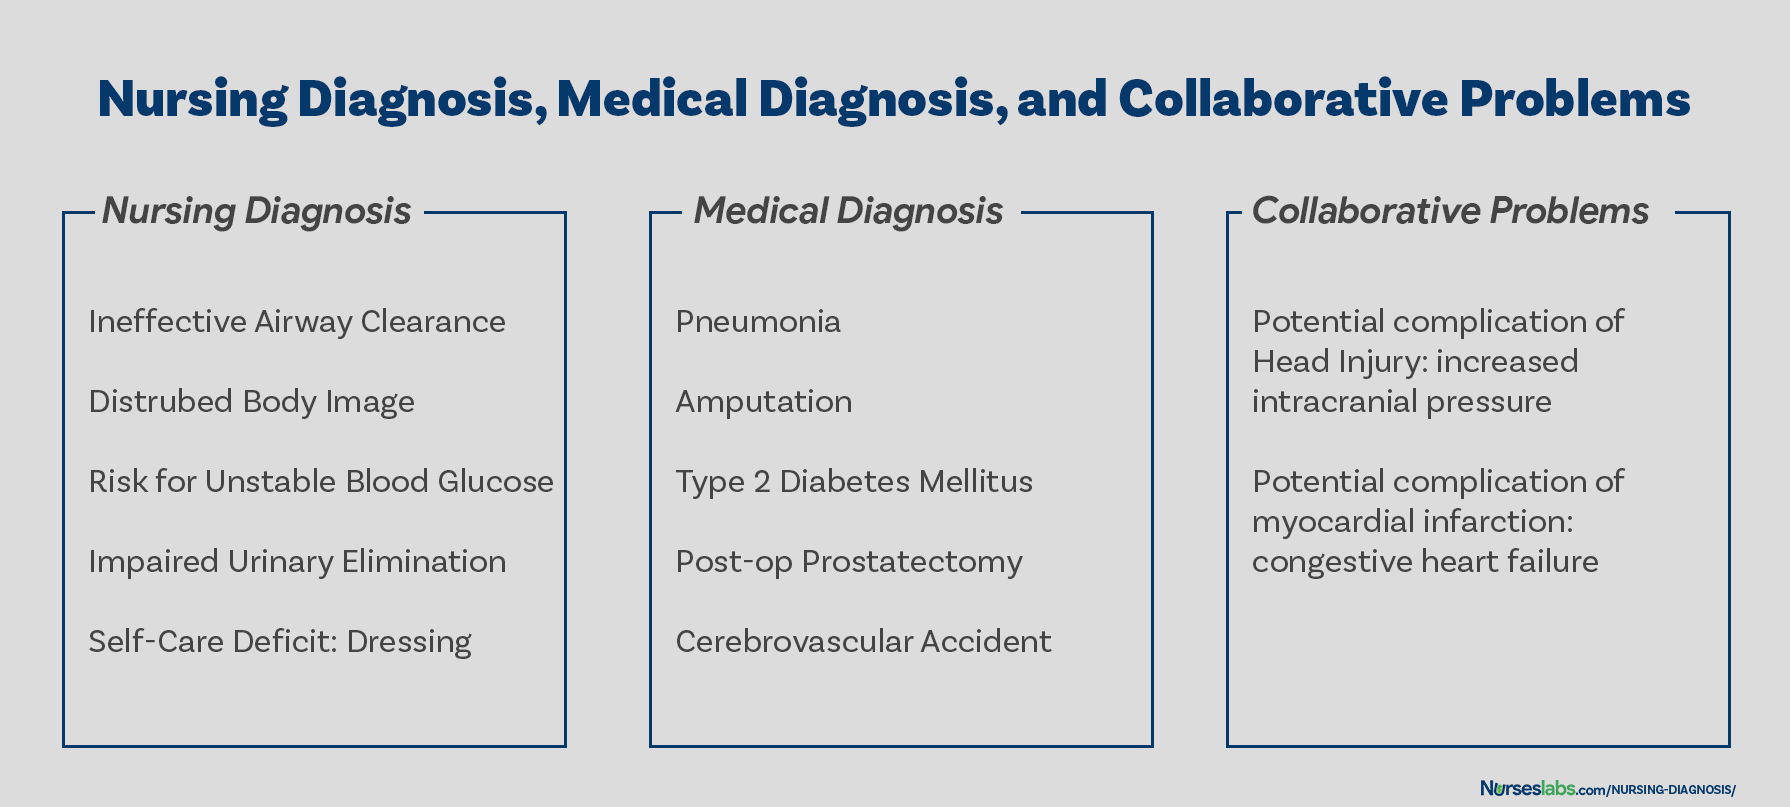 Examples of different nursing diagnoses, medical diagnoses, and collaborative problems – to show comparison.